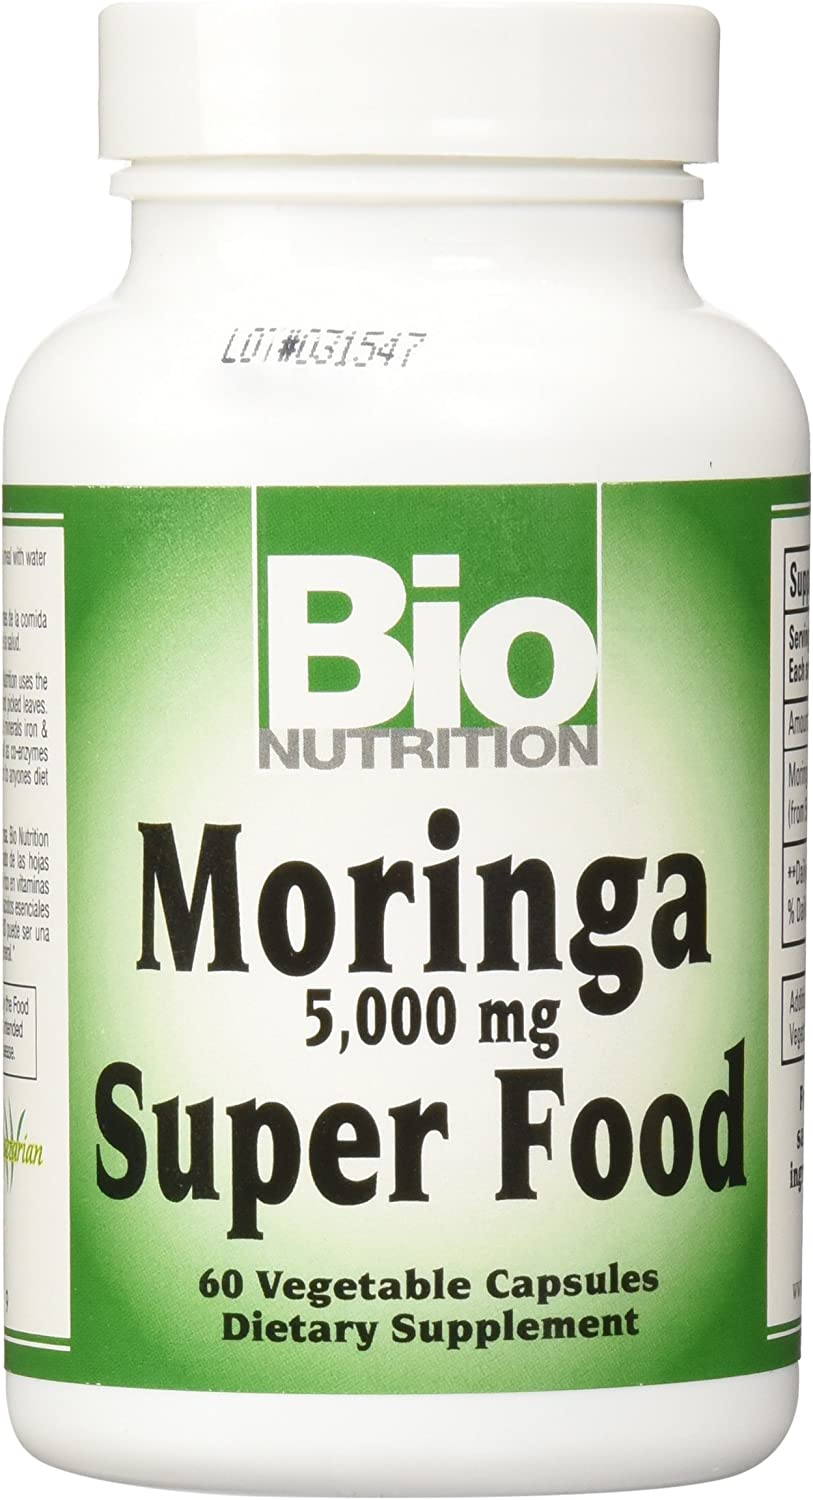 BIO NUTRITION INC Moringa 5,000 MG SUPR Food, 60 VCAP Pack of 2